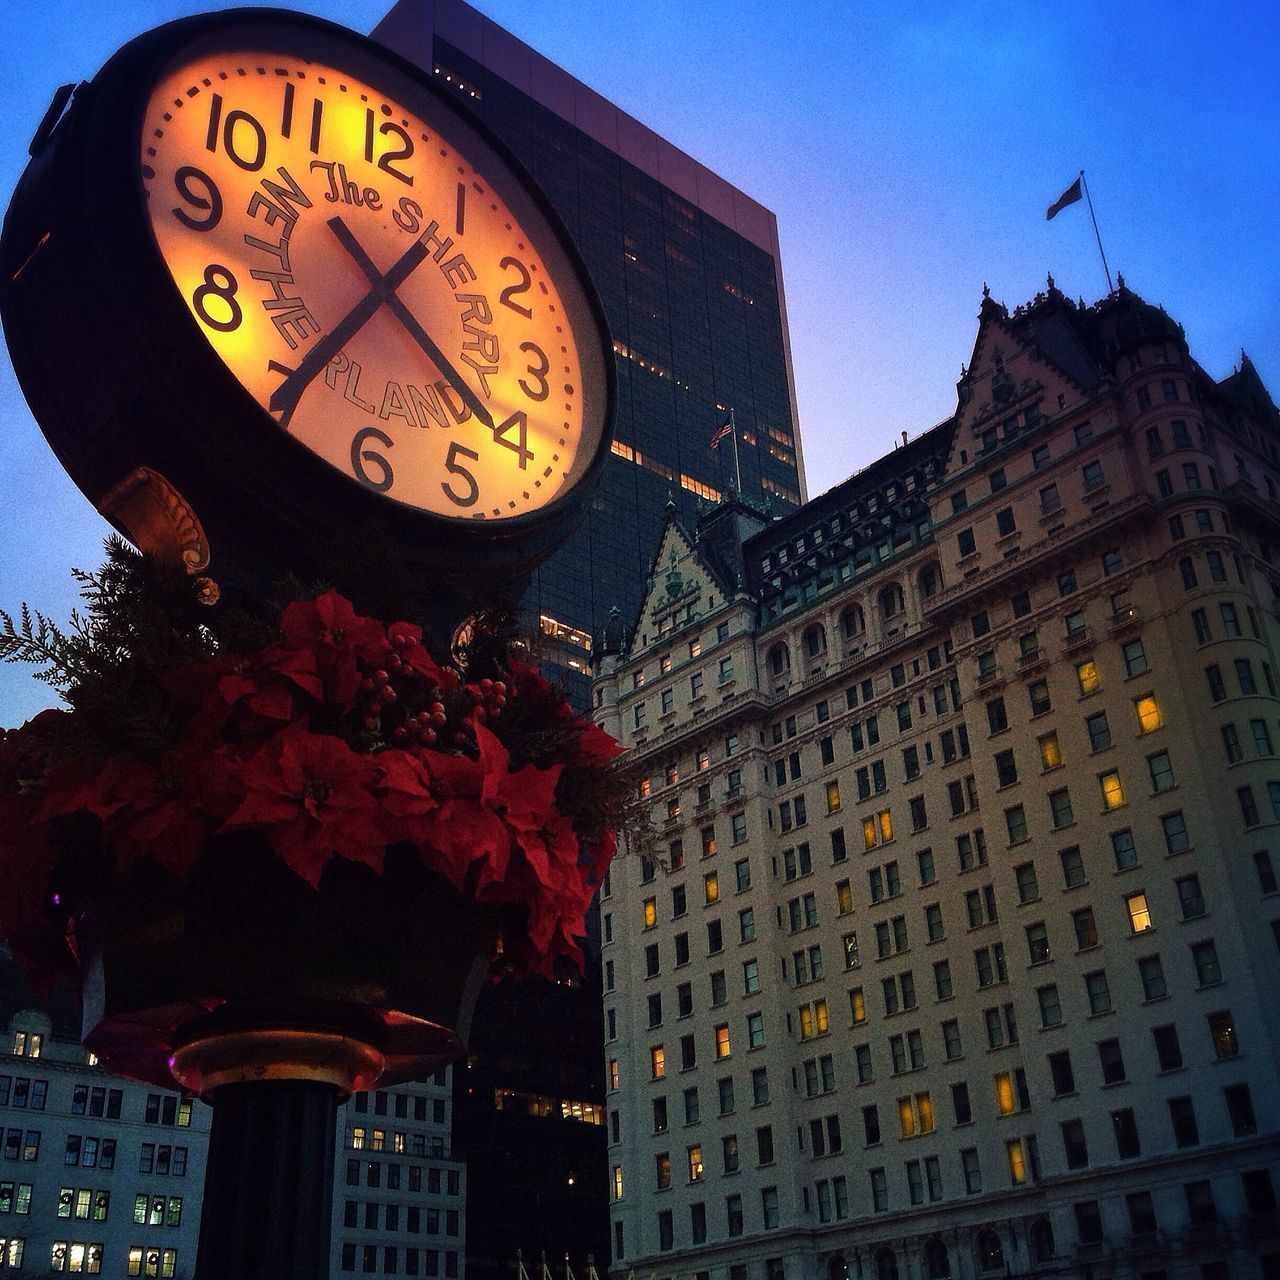 clock, time, building exterior, low angle view, architecture, no people, built structure, outdoors, city, clock tower, day, clock face, minute hand